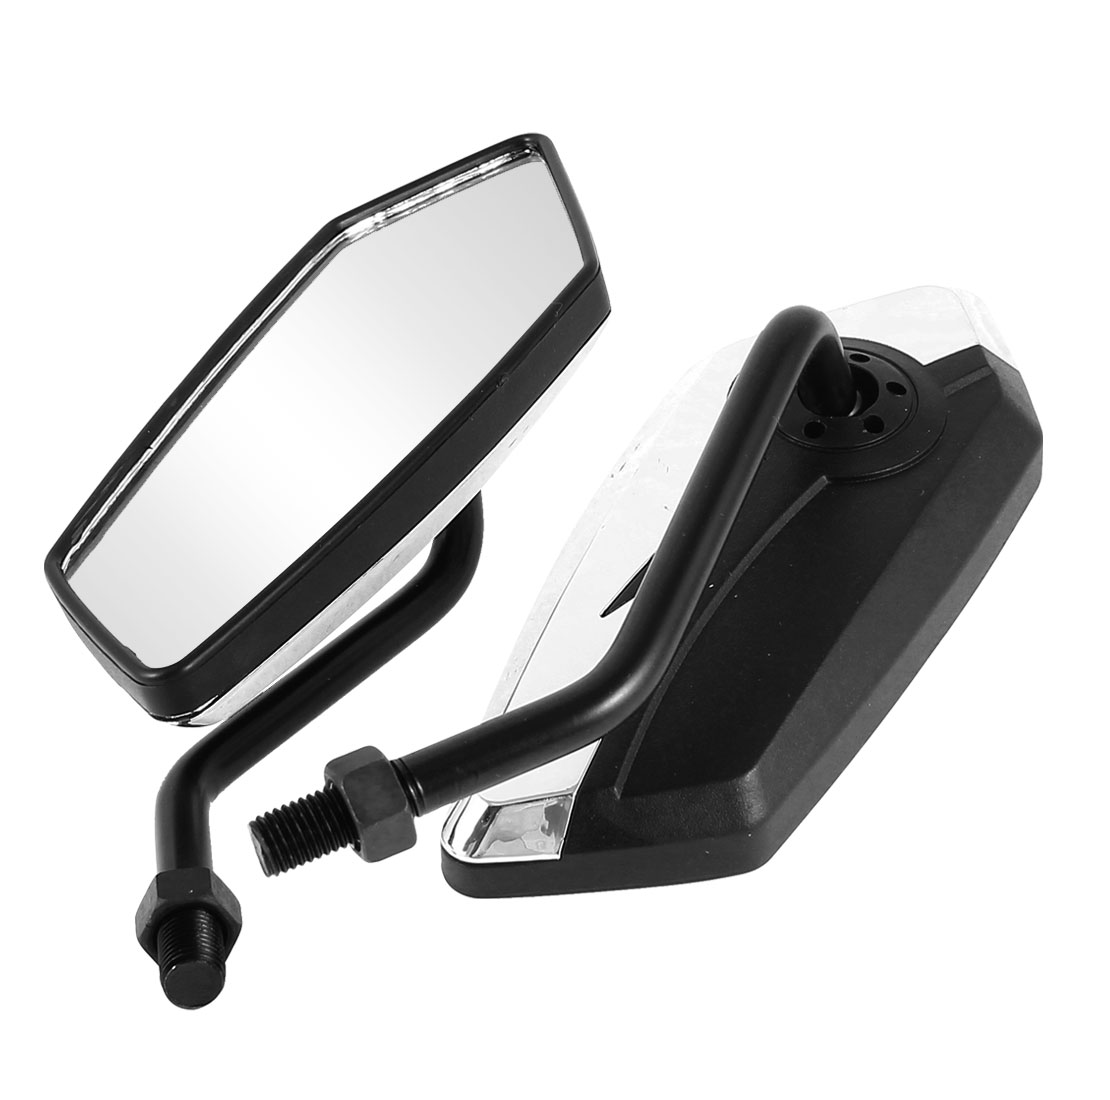 2 Pcs Black Silver Tone Polygon Shaped Rearview Mirrors for Motorcycle Motorbike